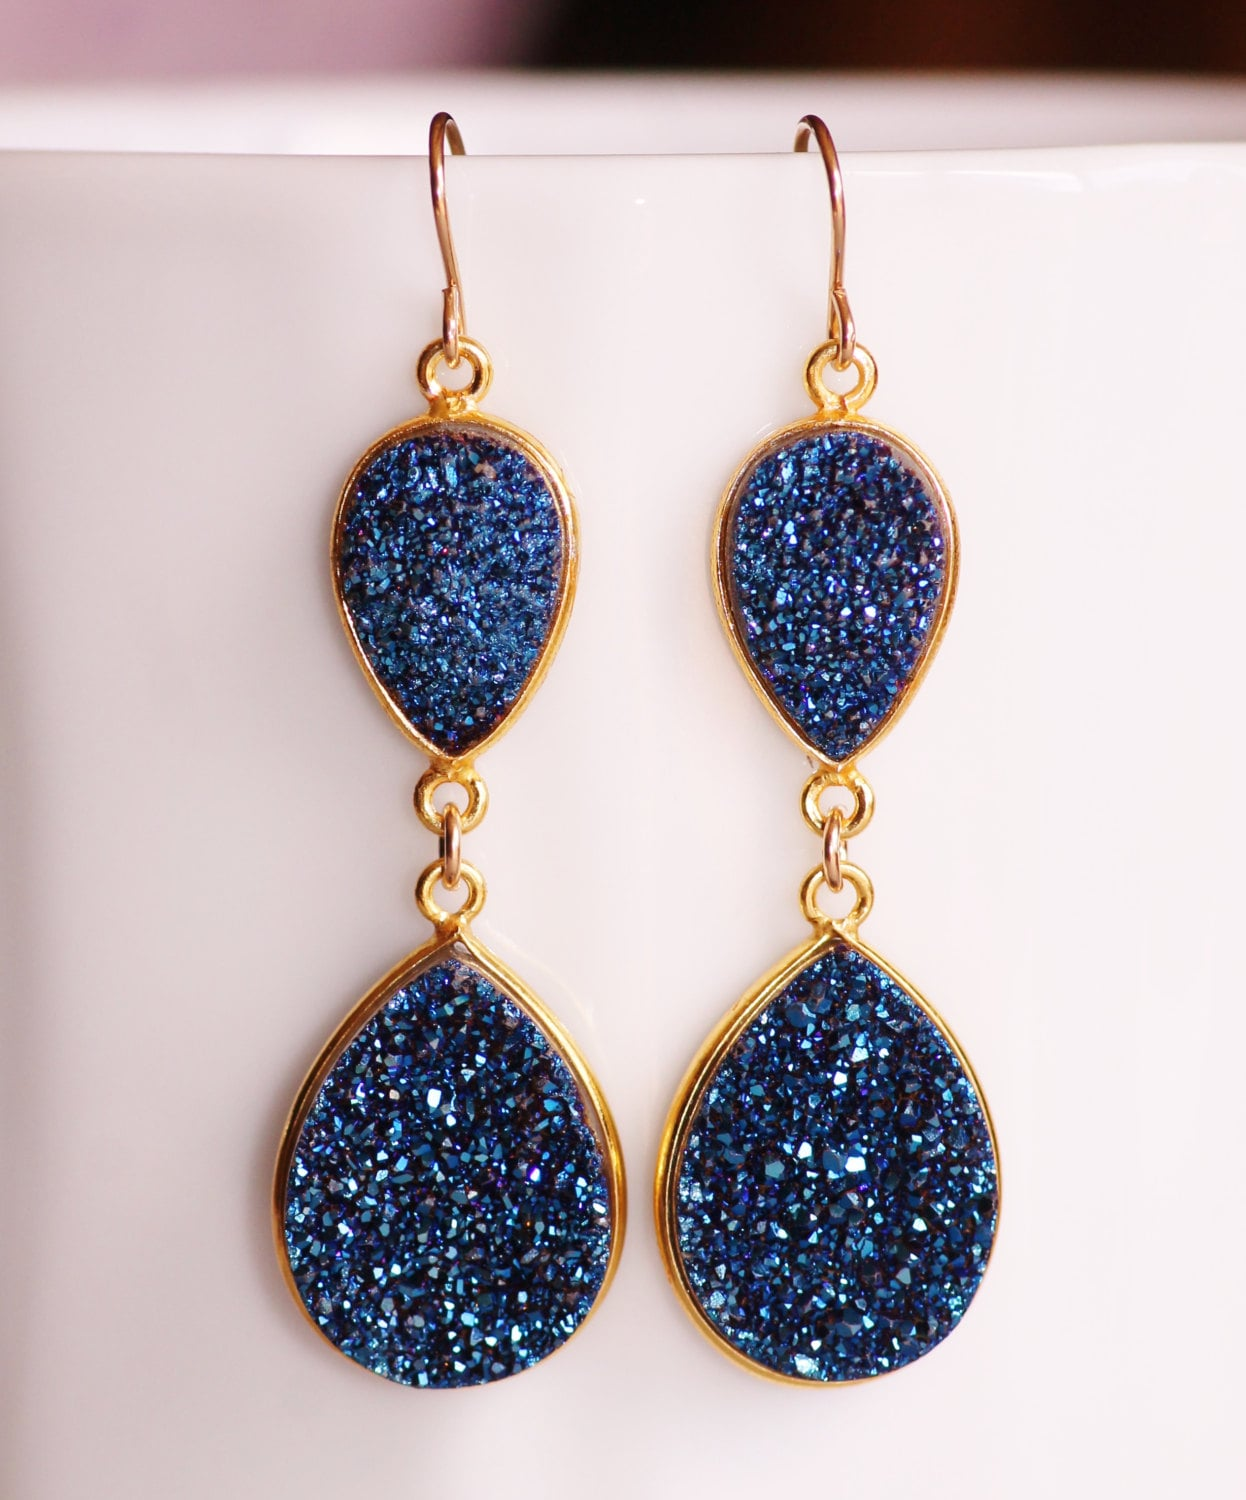 plated royal pin earring jewelry earrings dark blue silver gemstone agate navy